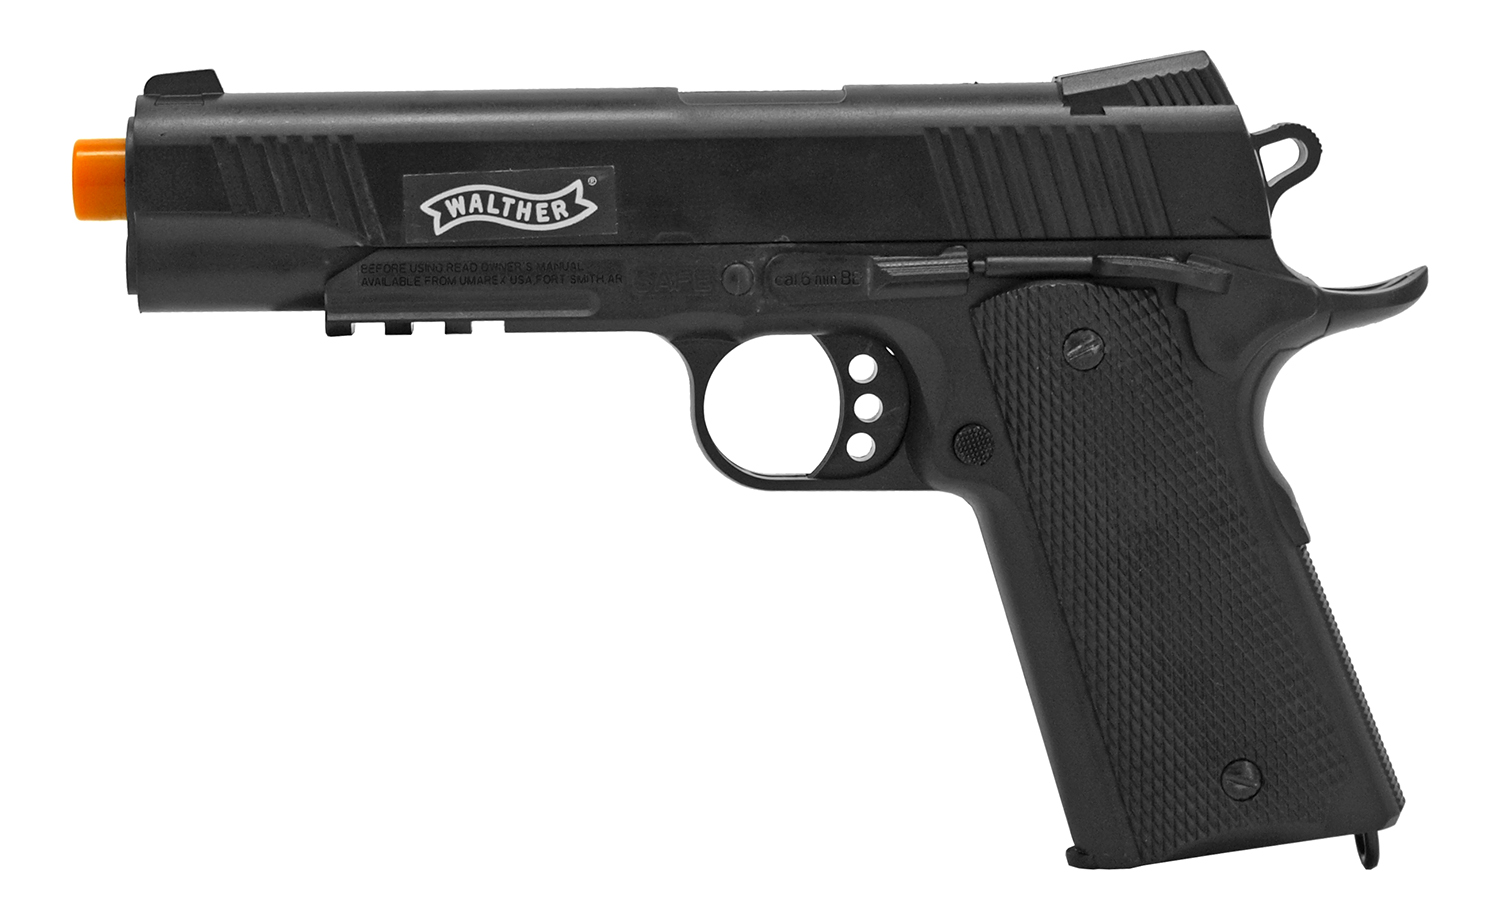 Official Walther Replica Spring Powered Airsoft Pistol - Black